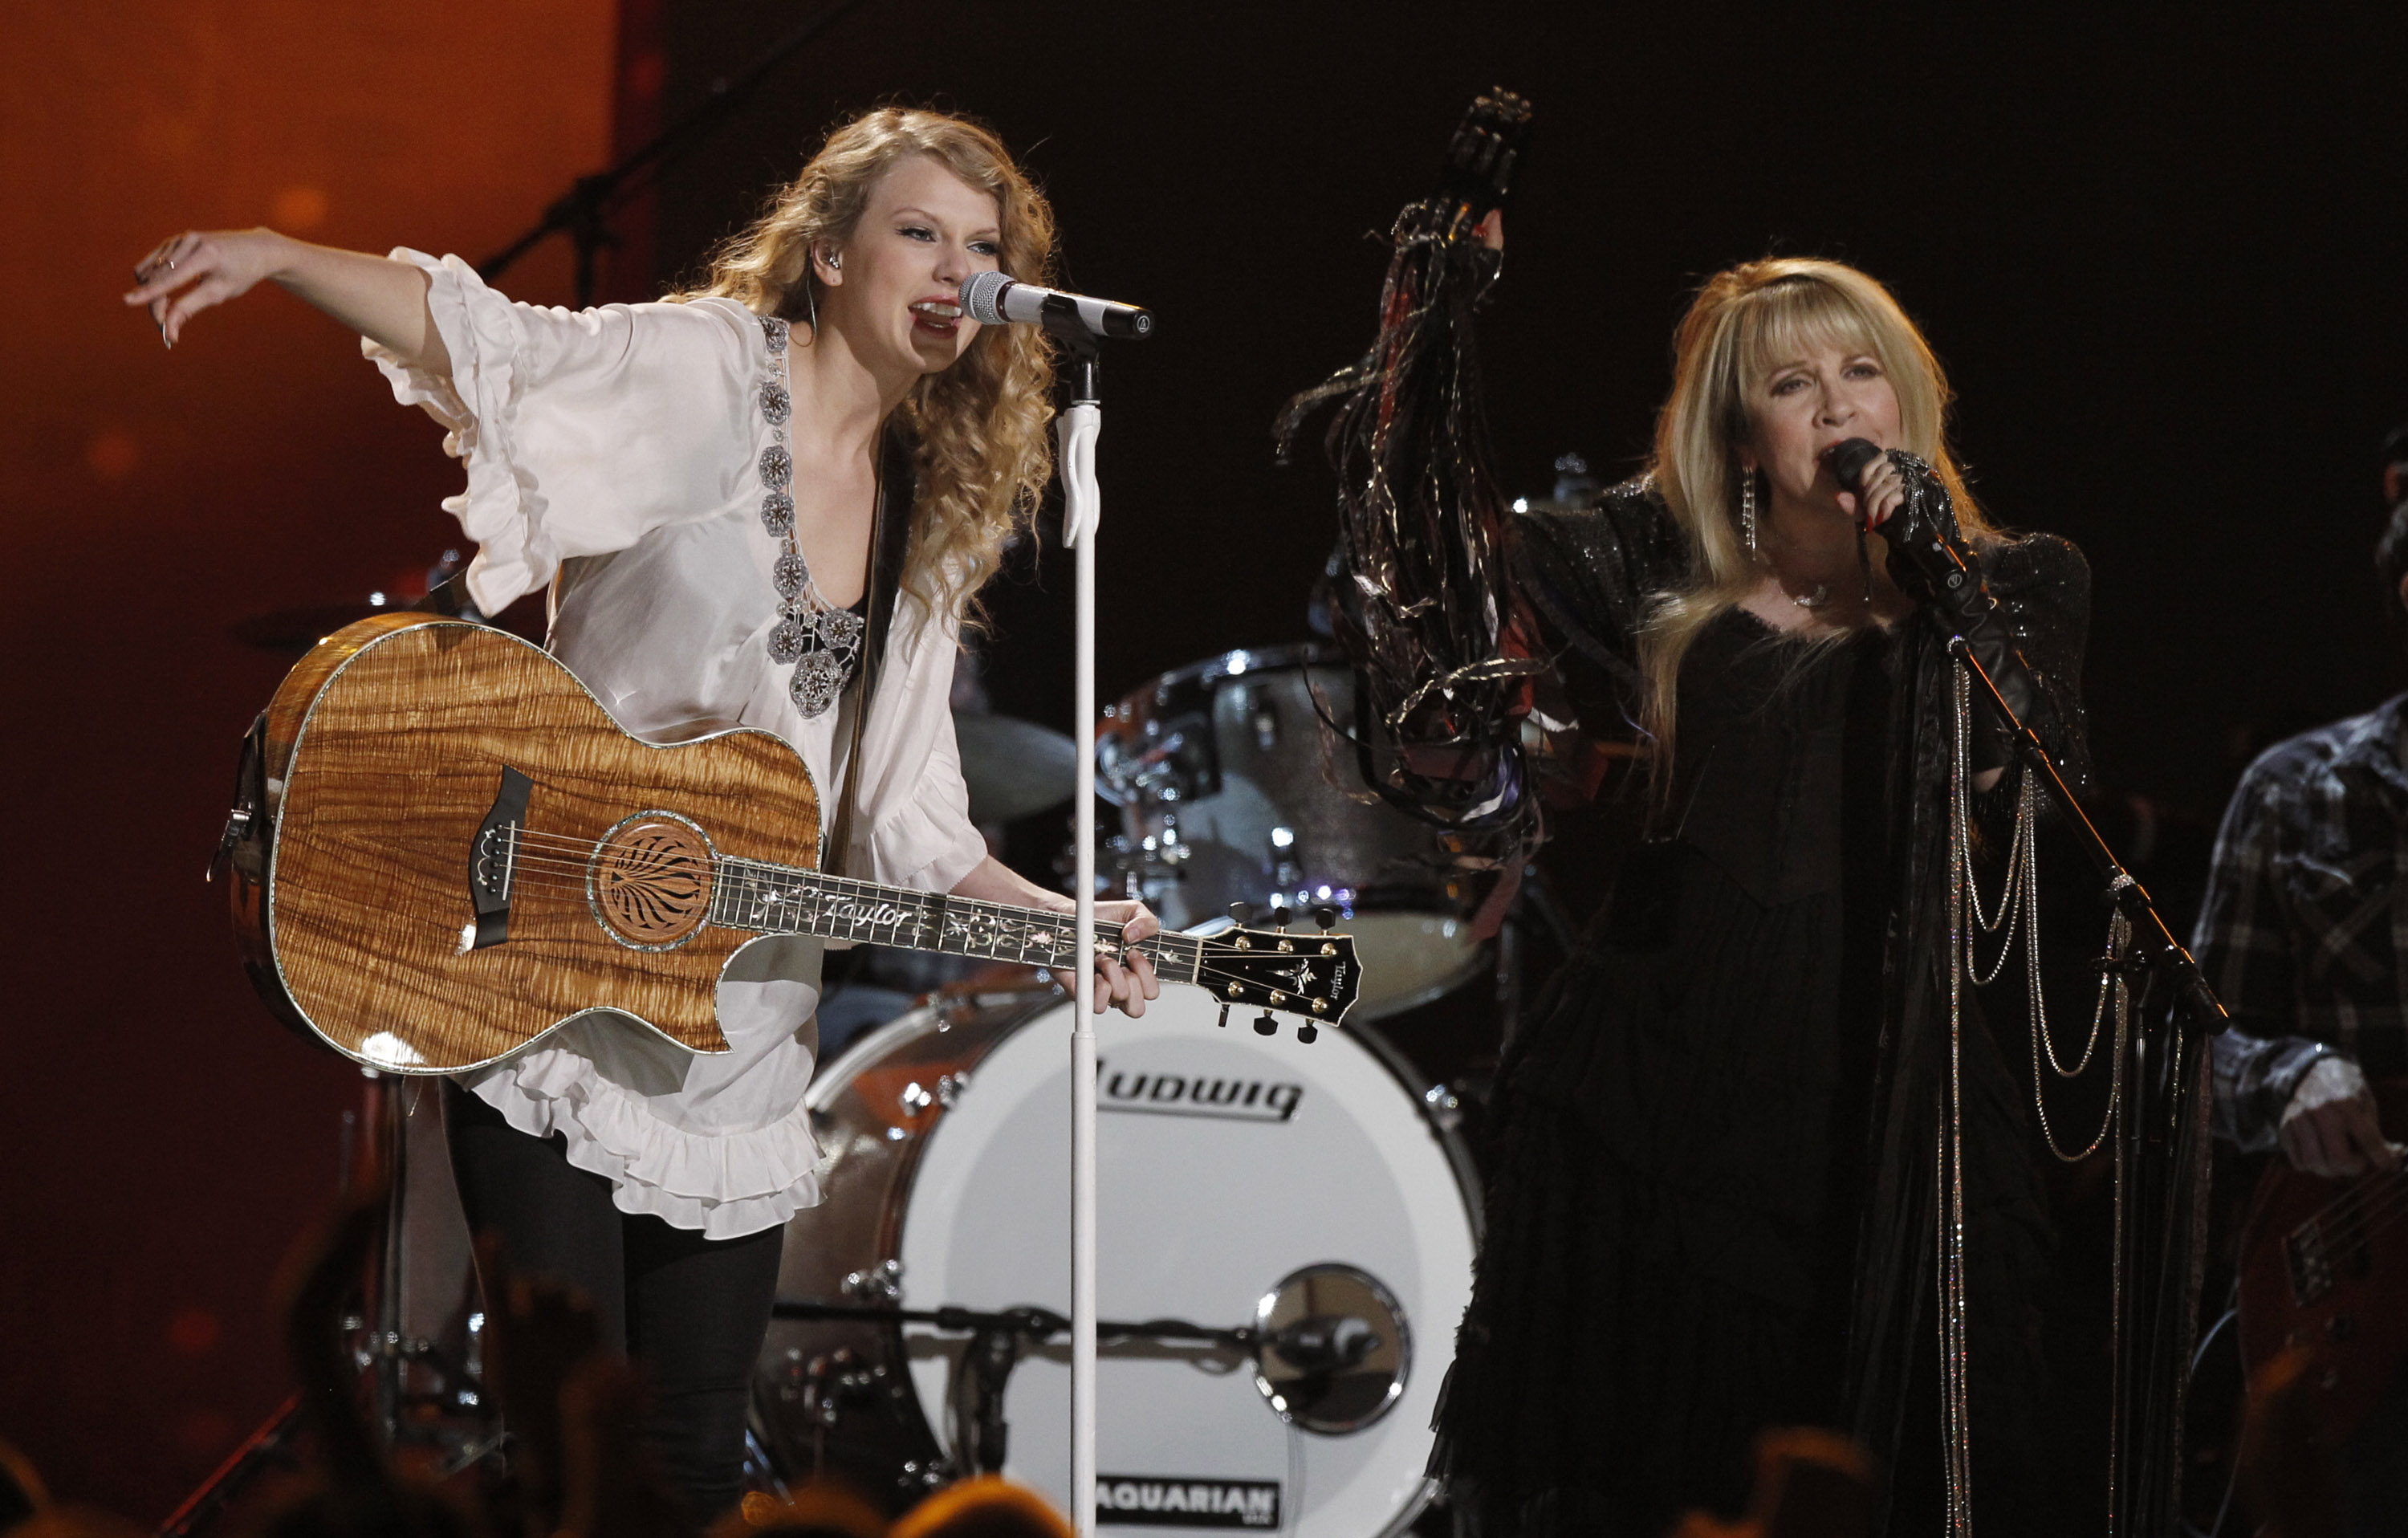 Taylor Swift , left, and Stevie Nicks perform at the Grammy Awards on Sunday, Jan. 31, 2010, in Los Angeles.  (AP Photo/Matt Sayles)